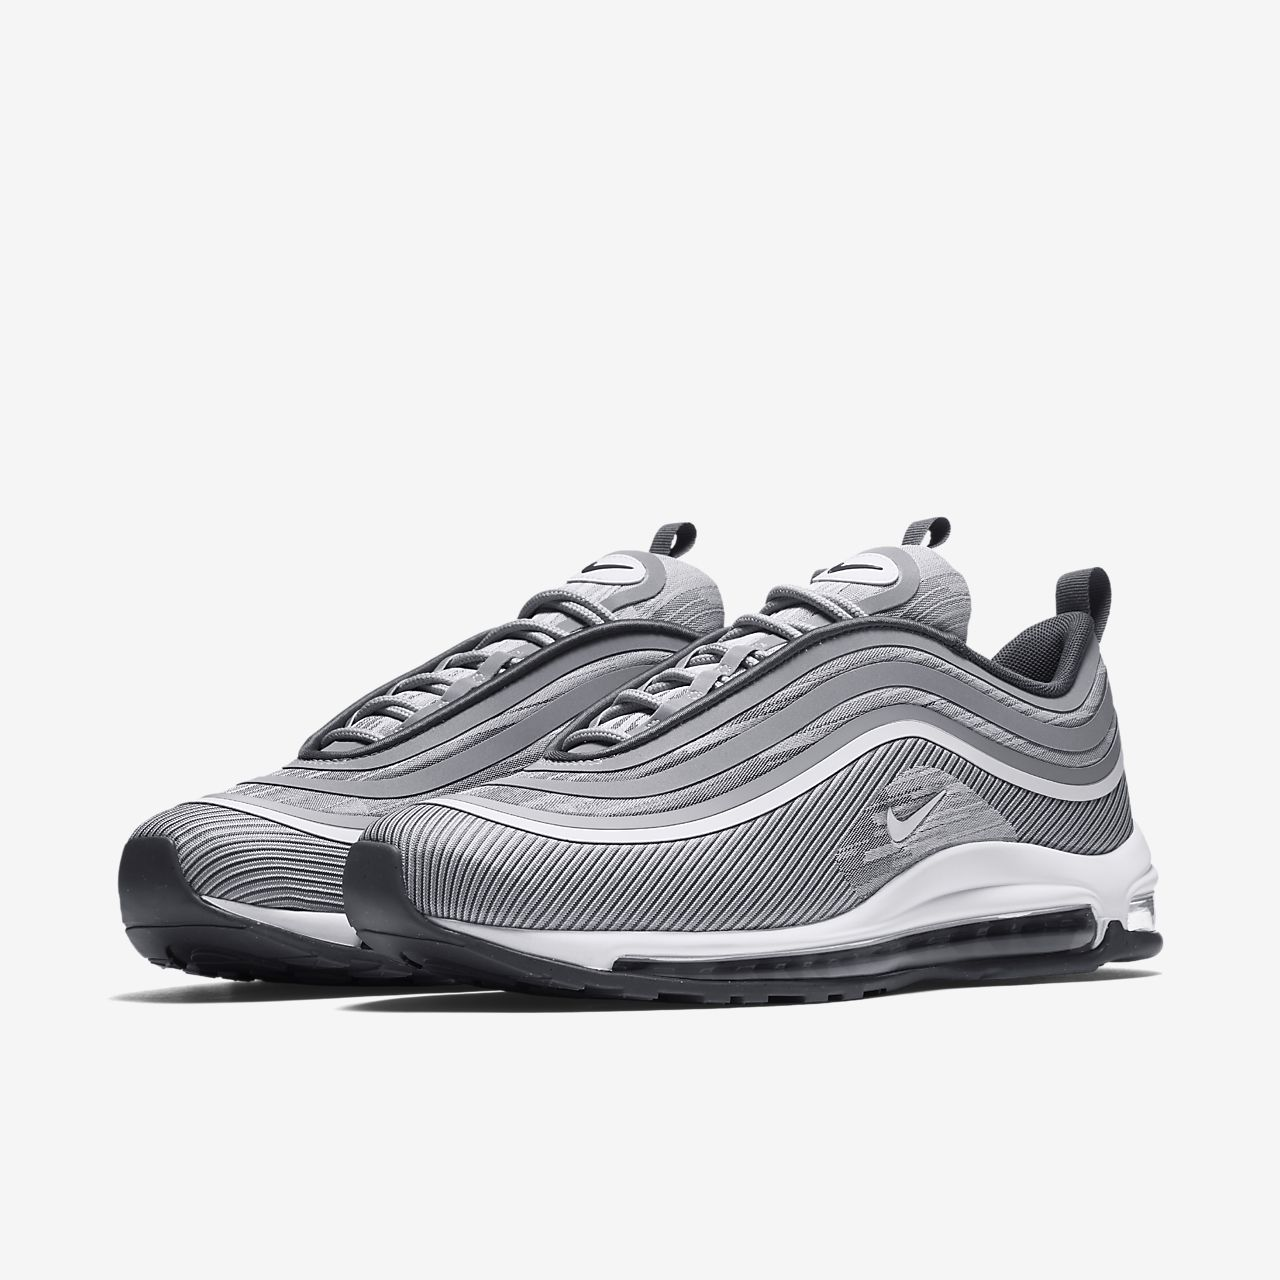 sports shoes 7584f d0f19 chaussure nike air max 97 ultra 17